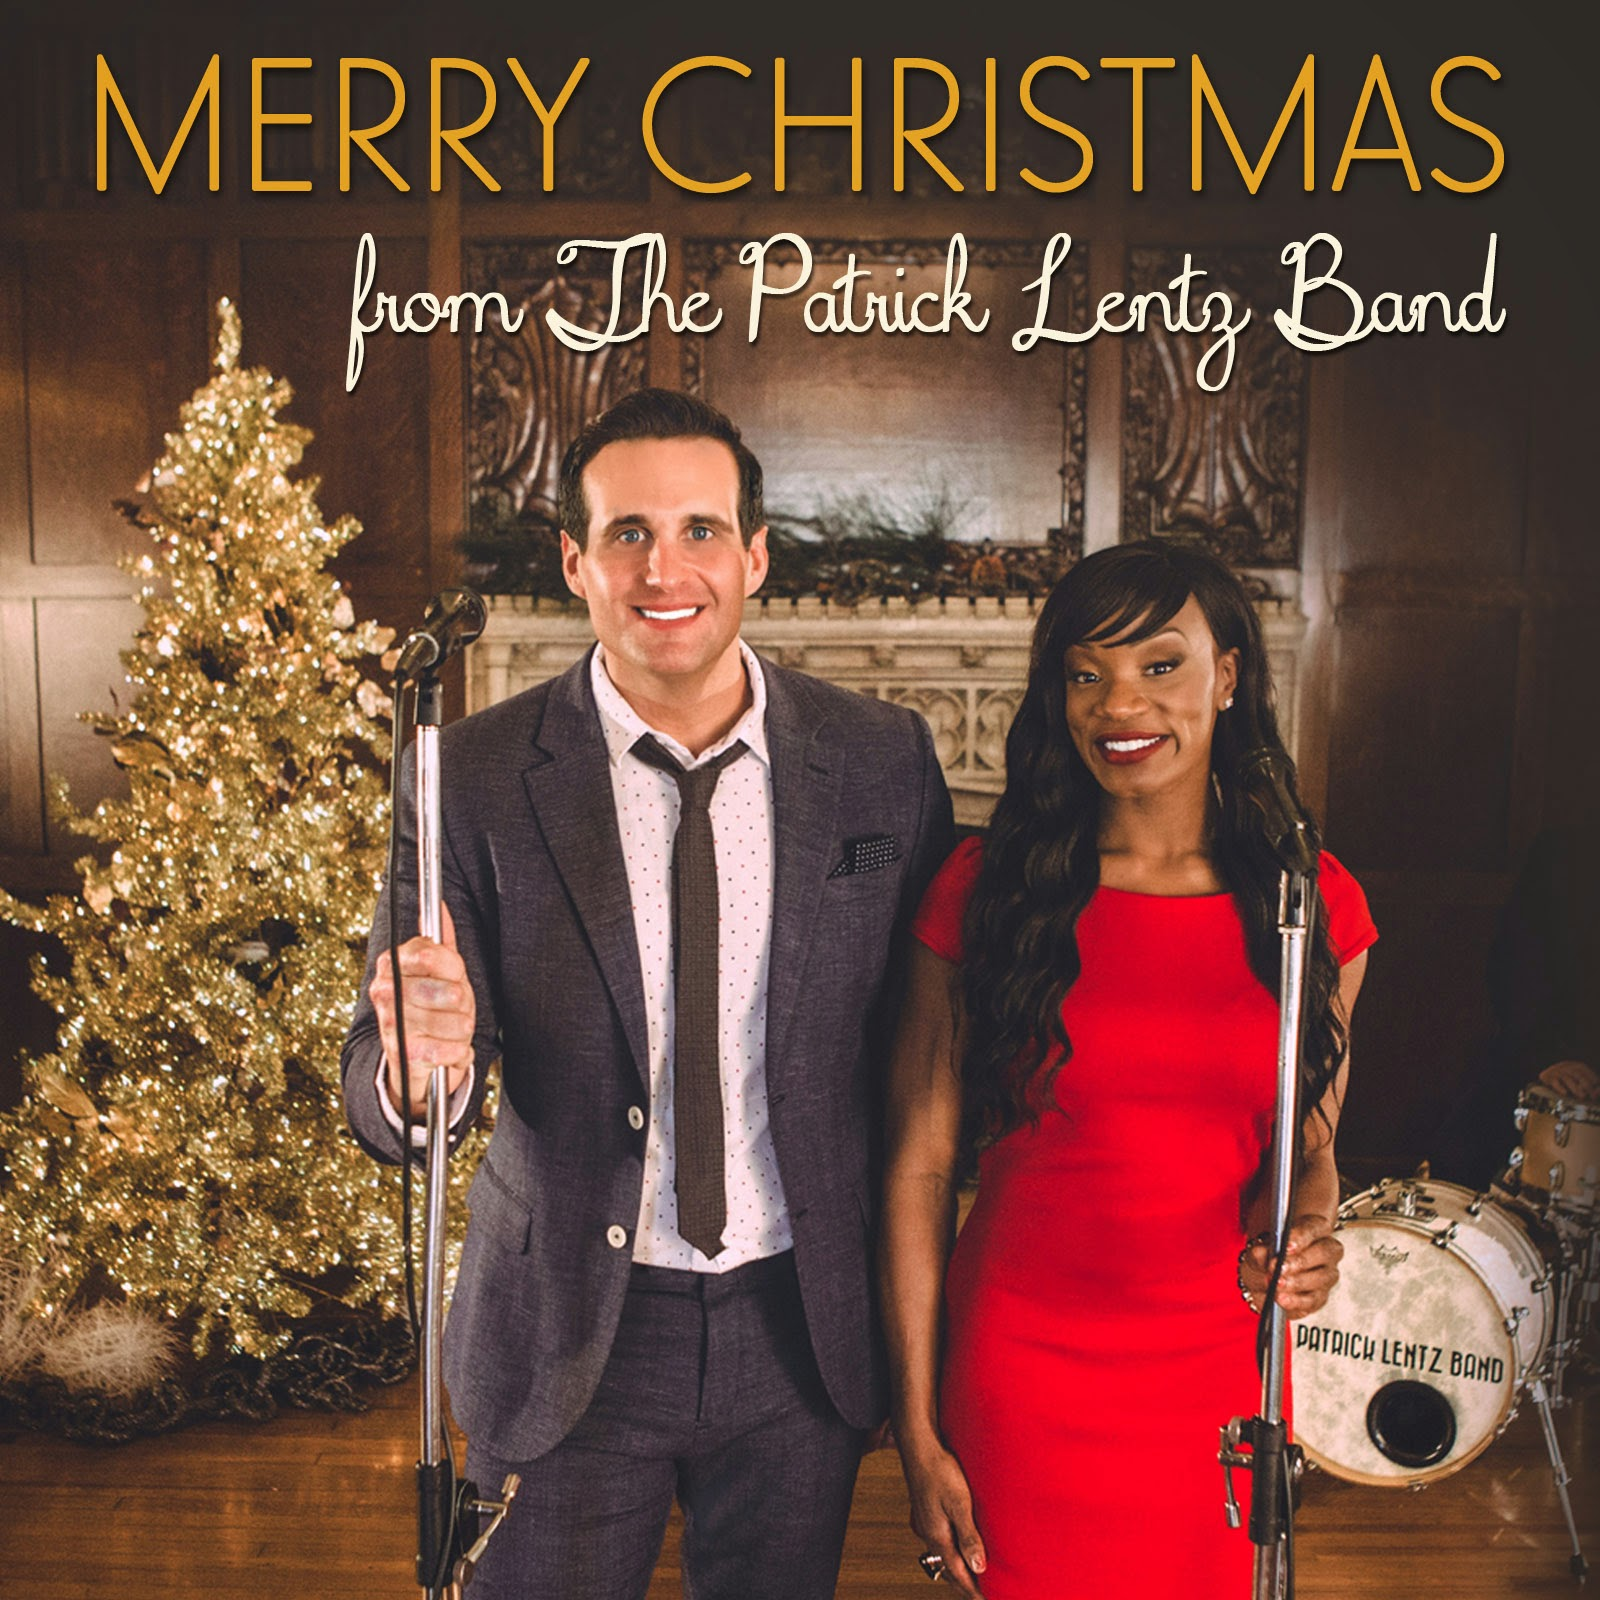 Merry Christmas From The Patrick Lentz Band Is Now On Sale At ITunes And Google Play!